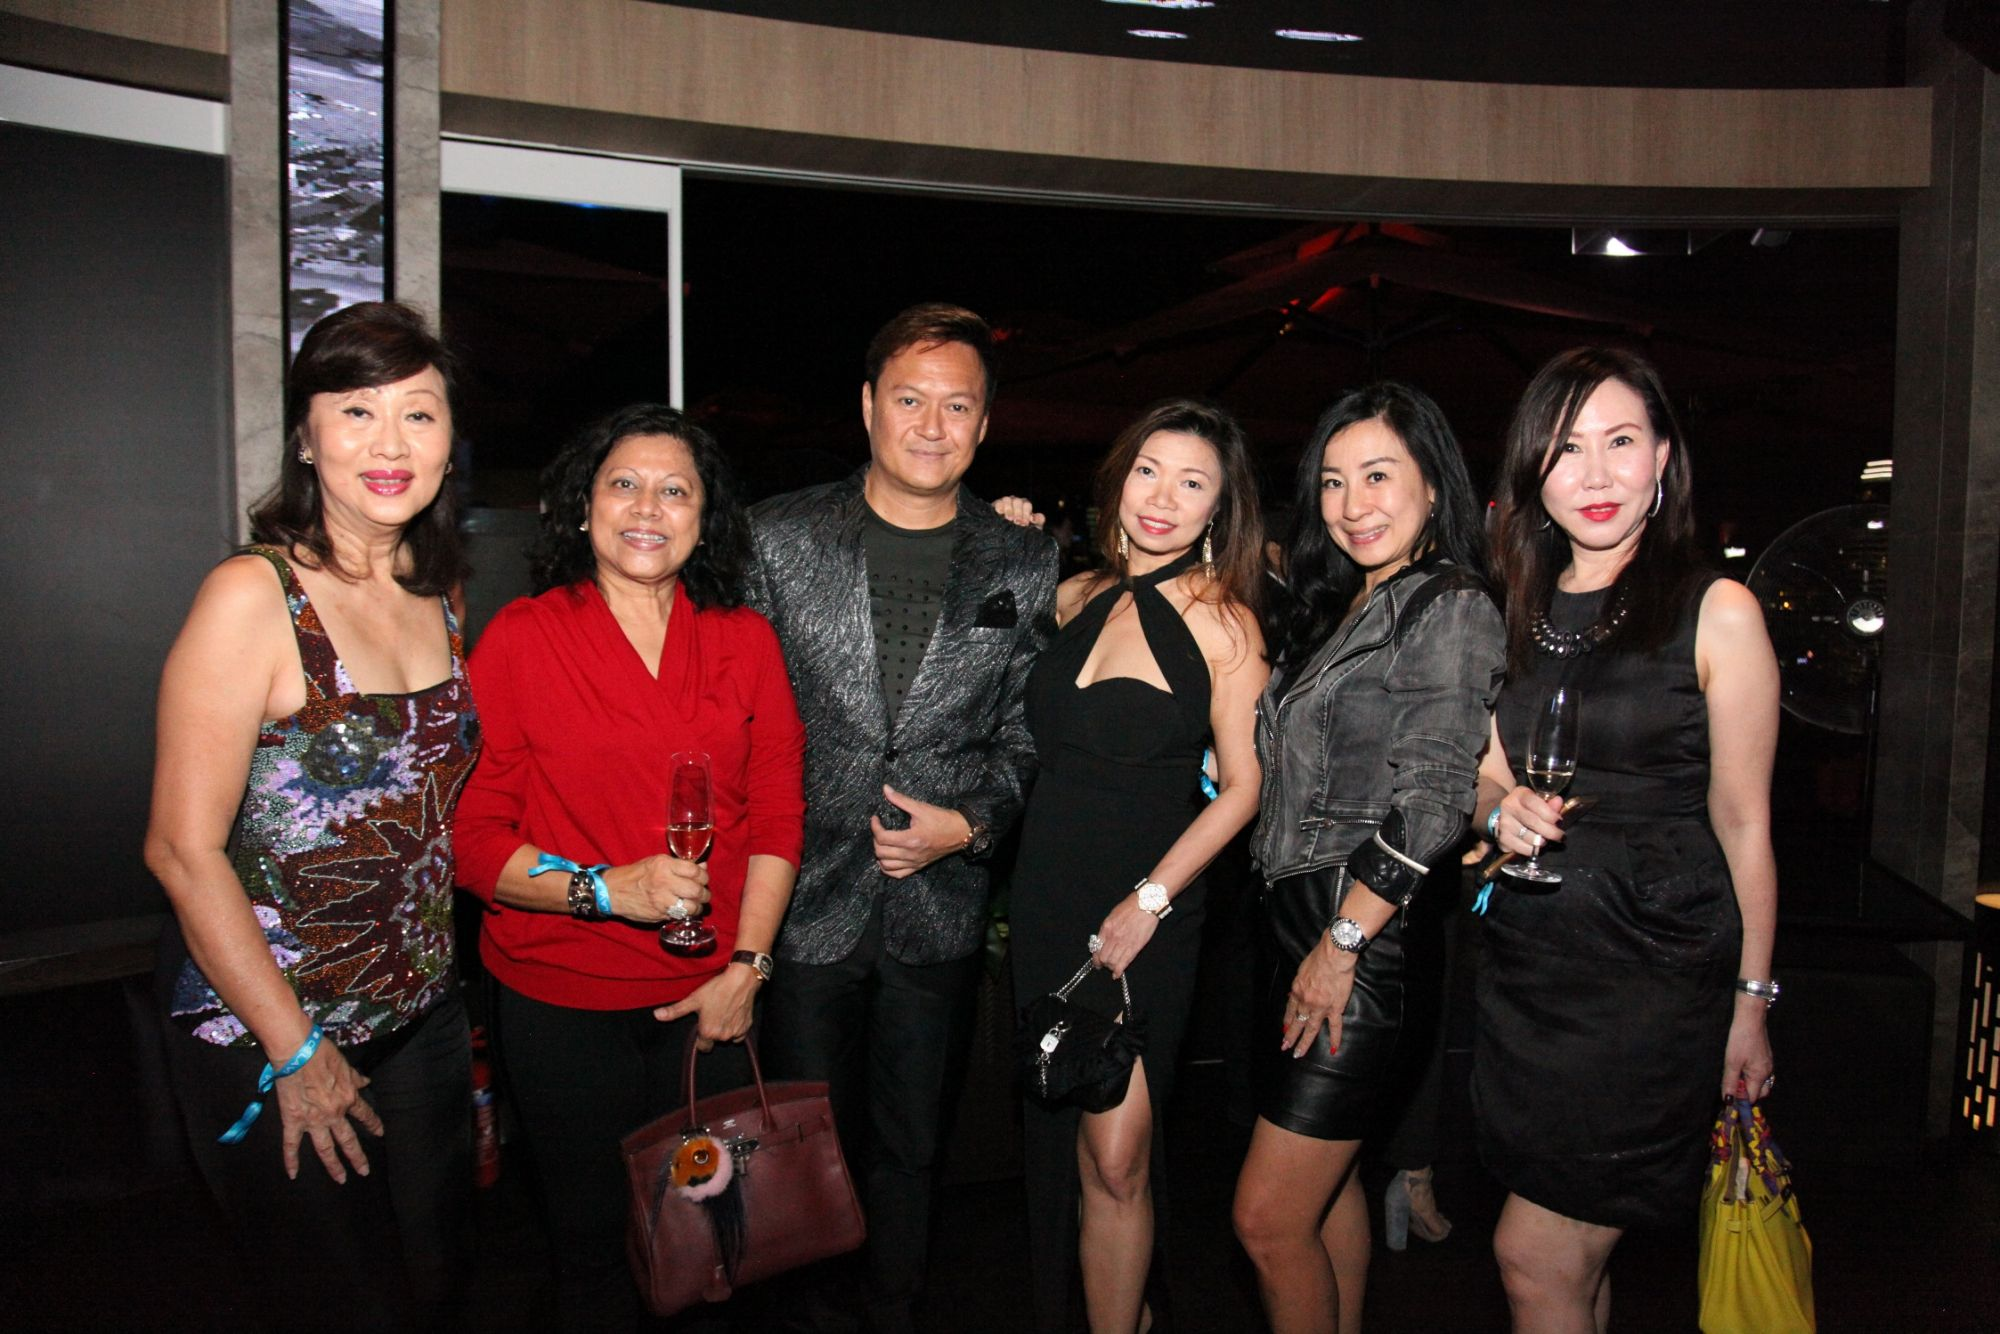 Evelyn Tan, Linda Boh, Raymond Cheok, Lucy Cheok, Mildred Kuek, Michelle Chan